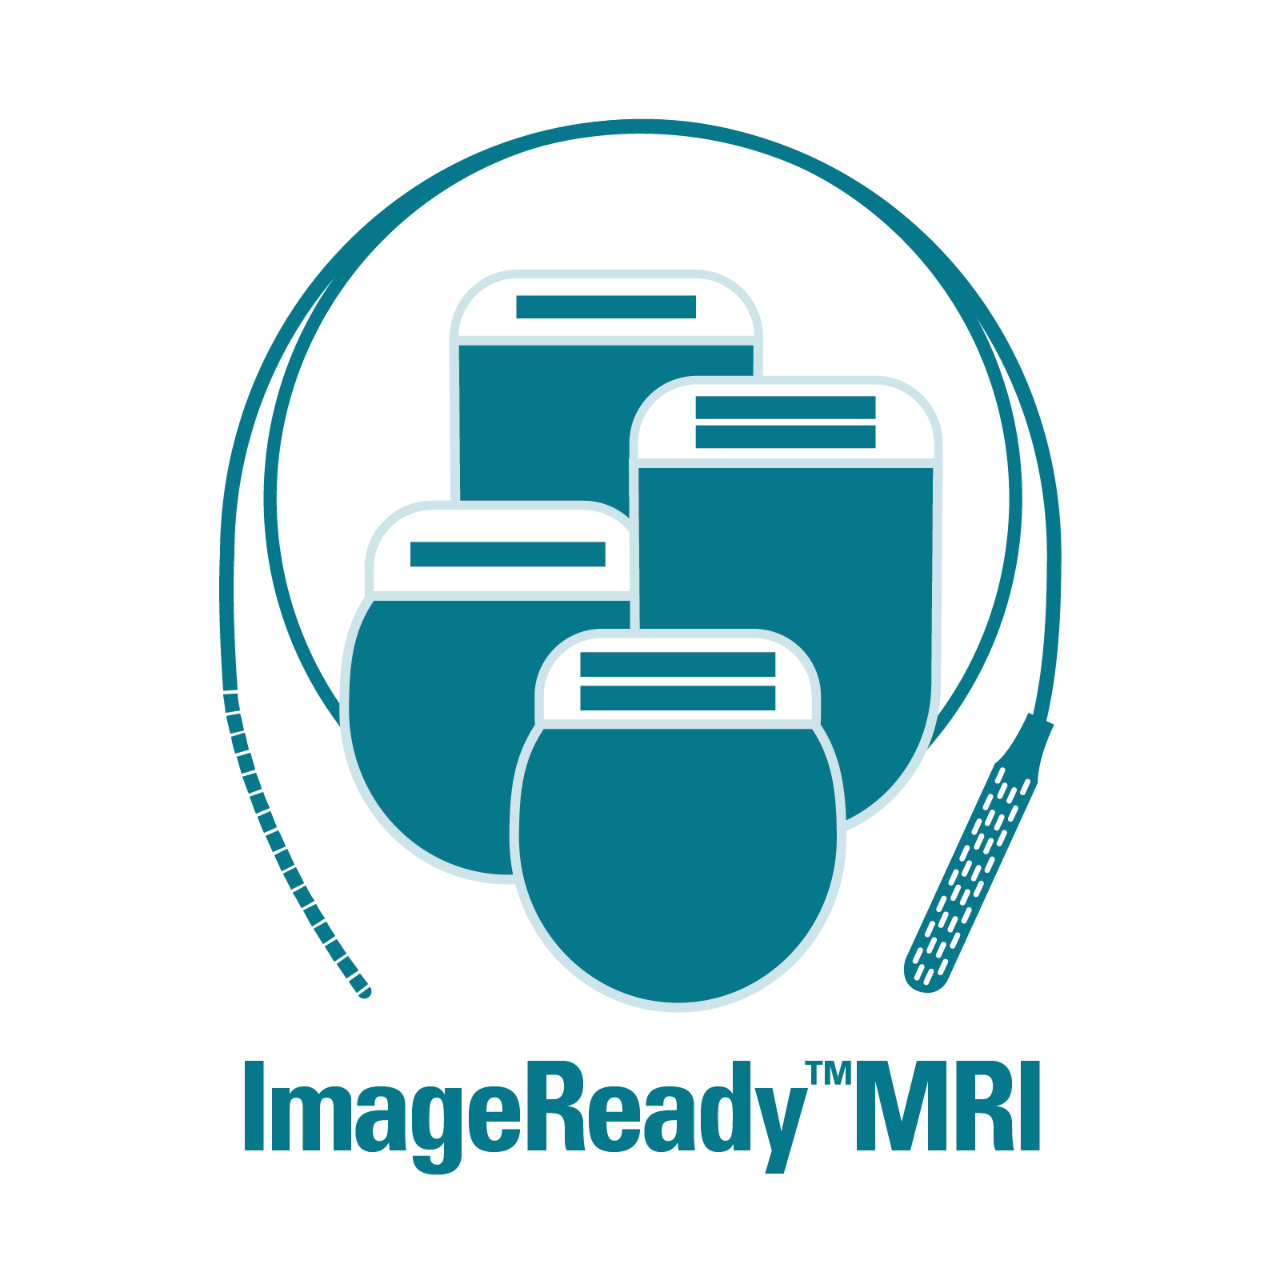 The ImageReady™ MRI portfolio of spinal cord stimulation systems